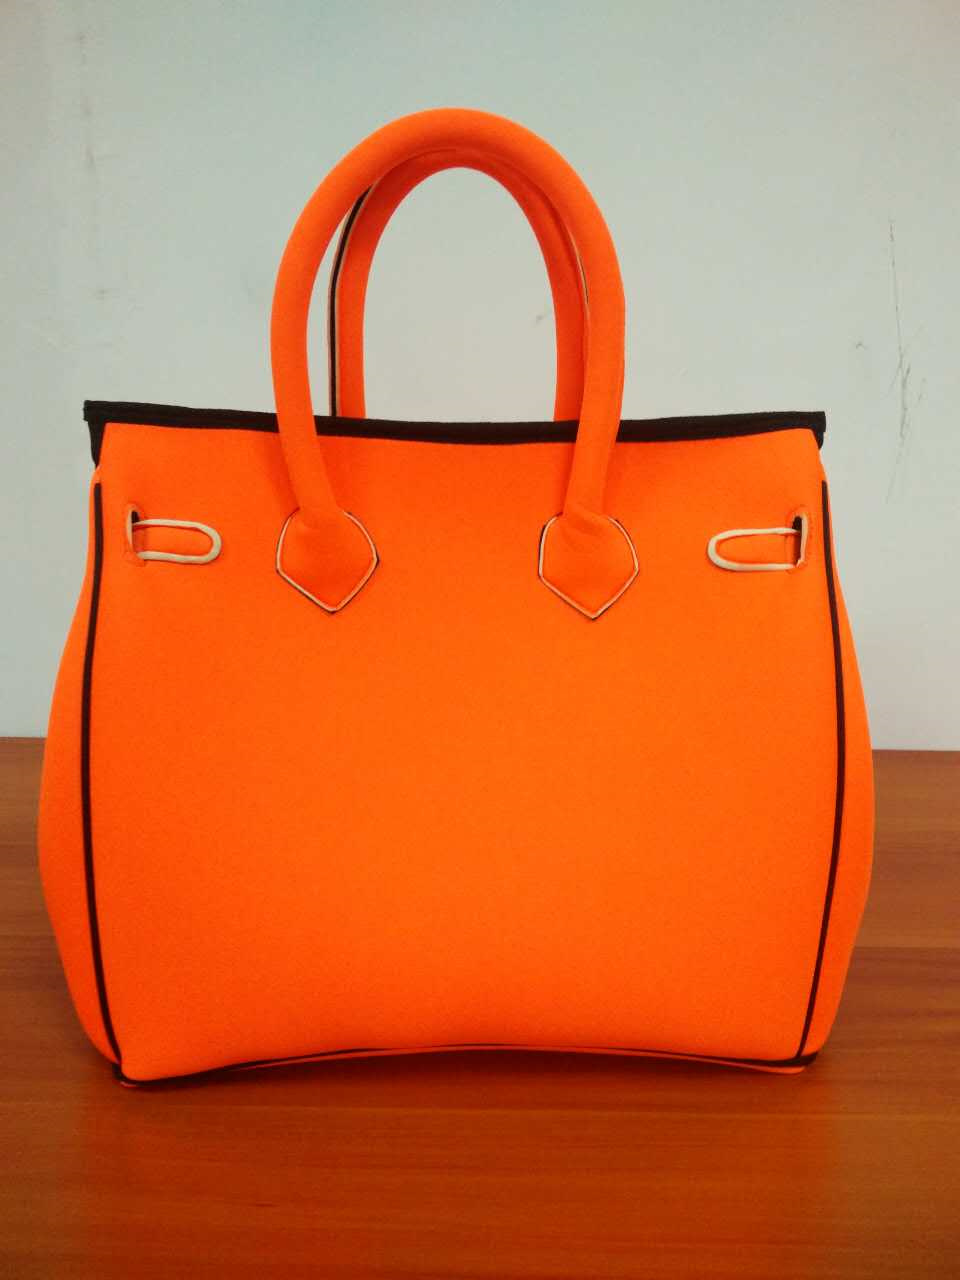 Fashion Neoprene Tote Bag Handbag for Lady